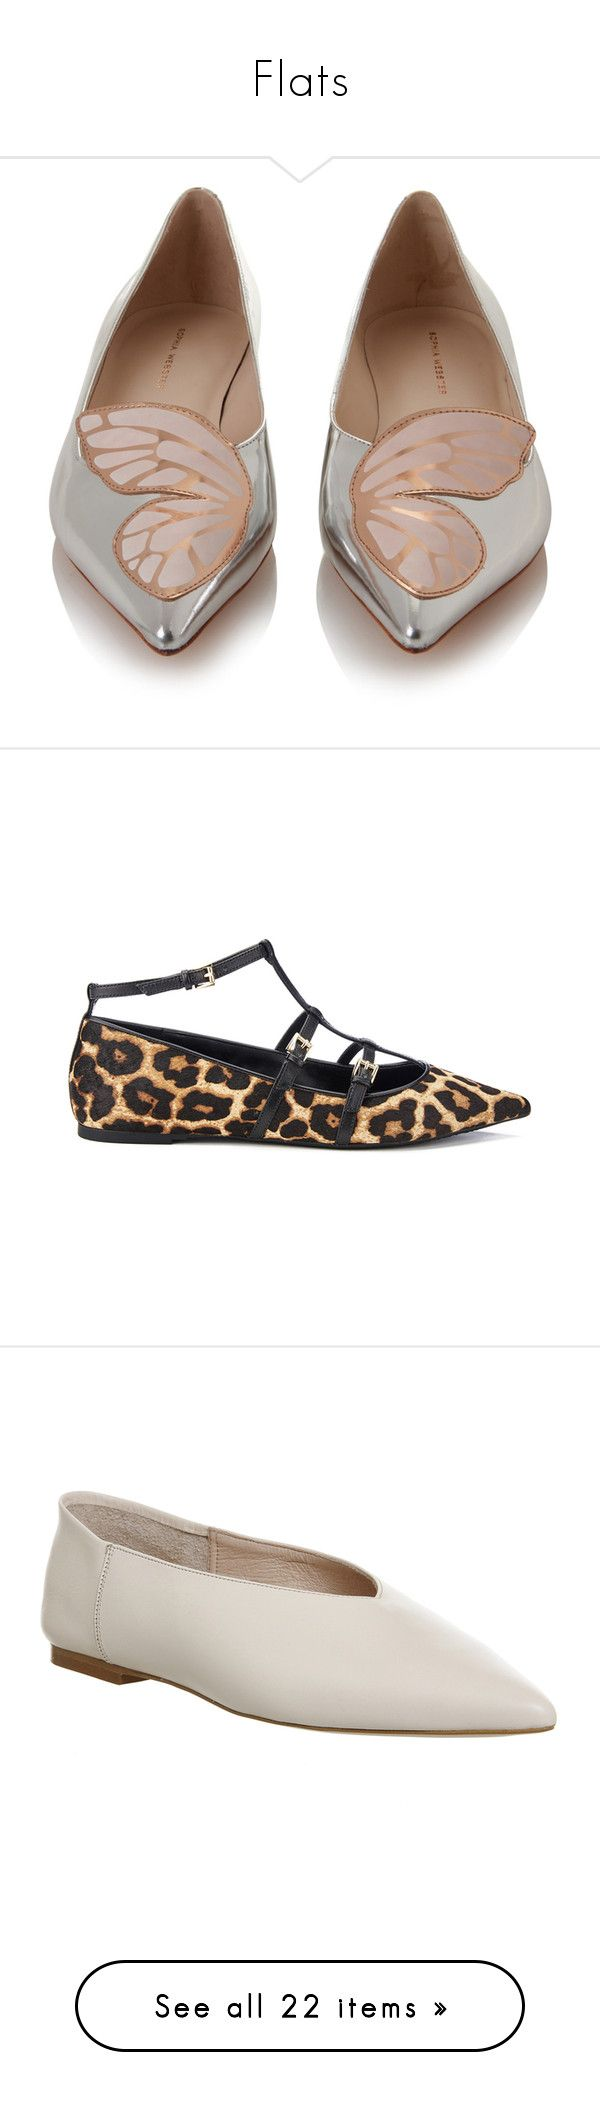 """""""Flats"""" by kitkat12287 ❤ liked on Polyvore featuring shoes, flats, flat shoes, metallic flats, pink flats, pink shoes, pointy toe flats, tan, pointed ballet flats and leopard ballet flats"""